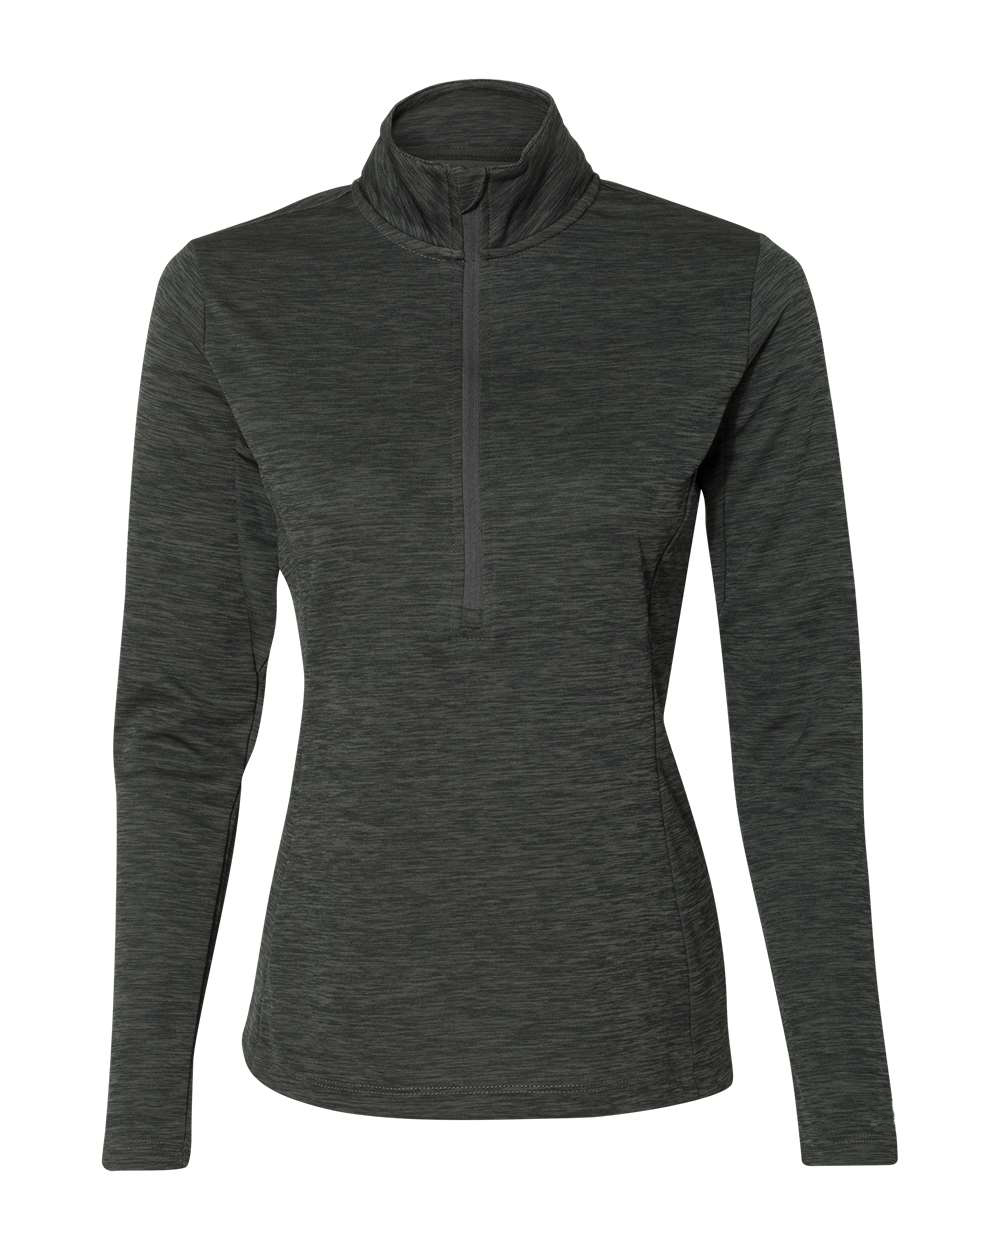 1/4 zip clearance